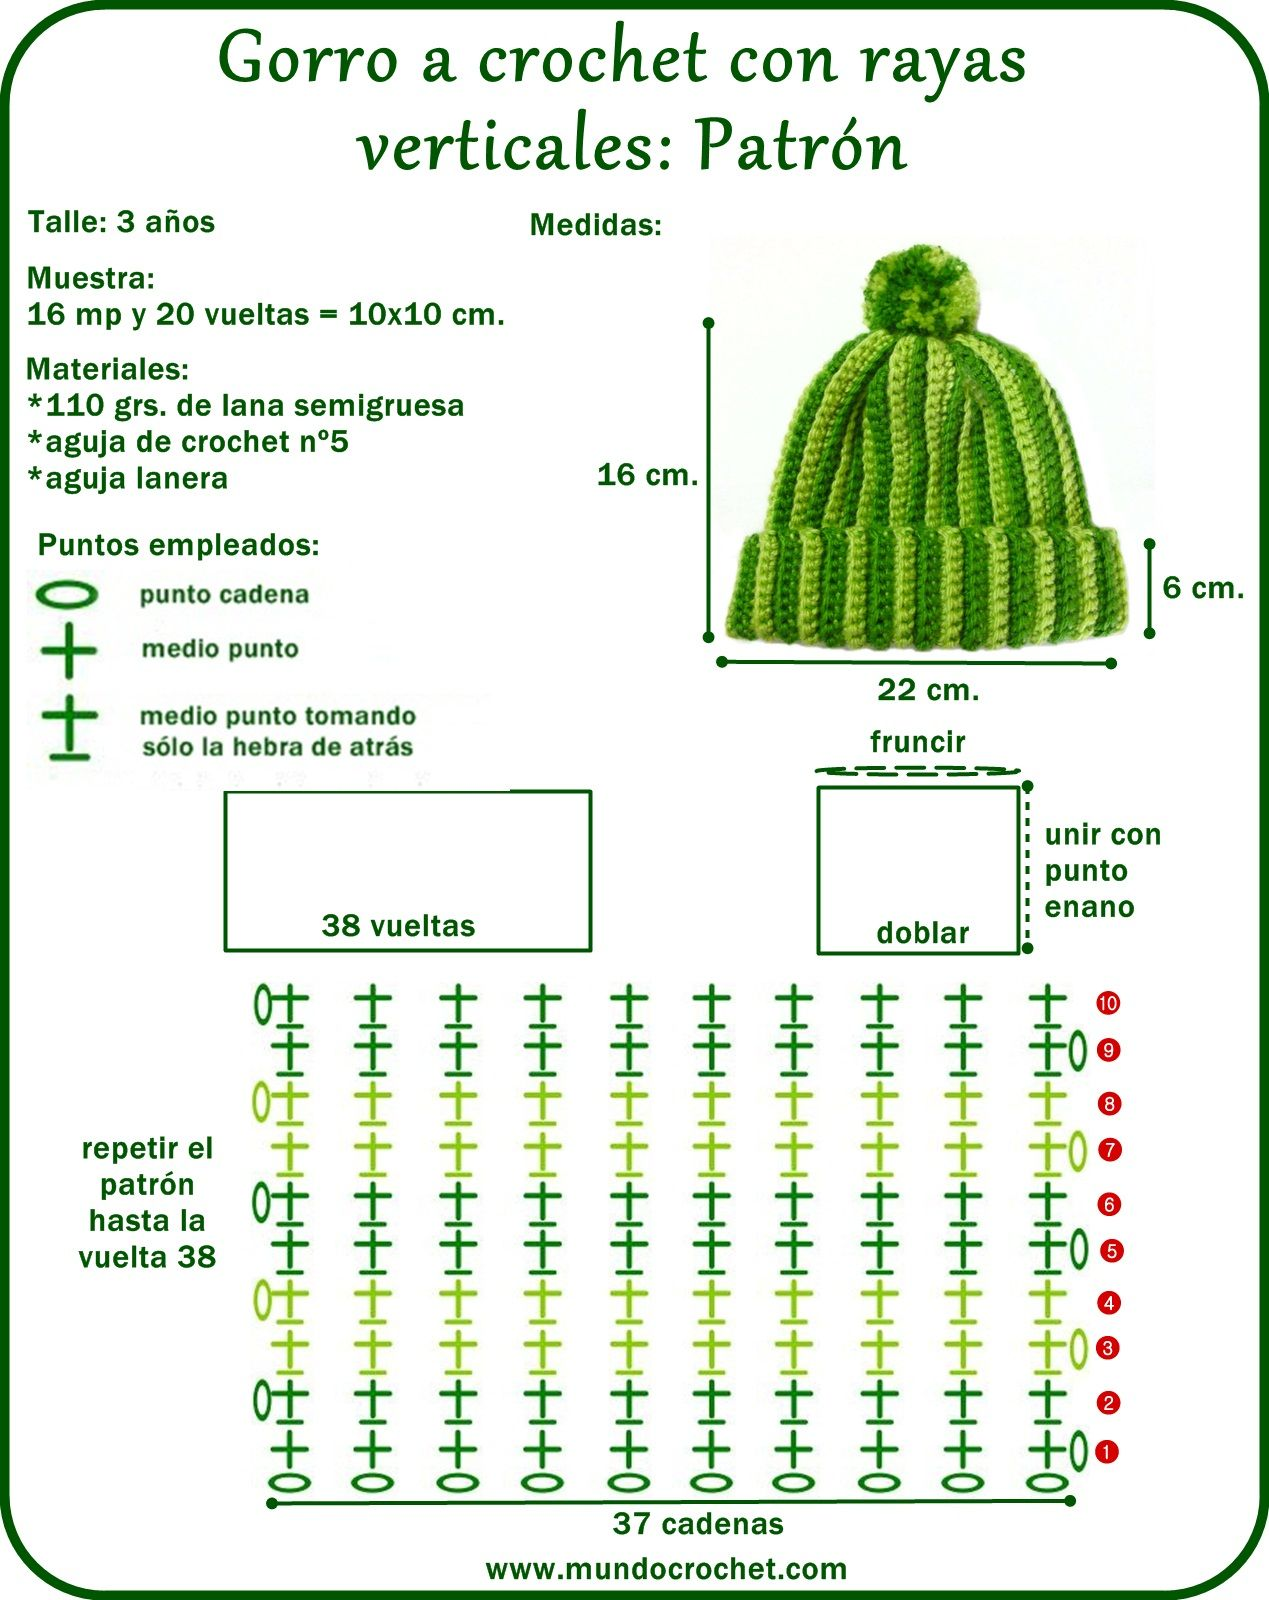 Pin de nina nina en gorros | Crochet, Crochet hats y Crochet patterns